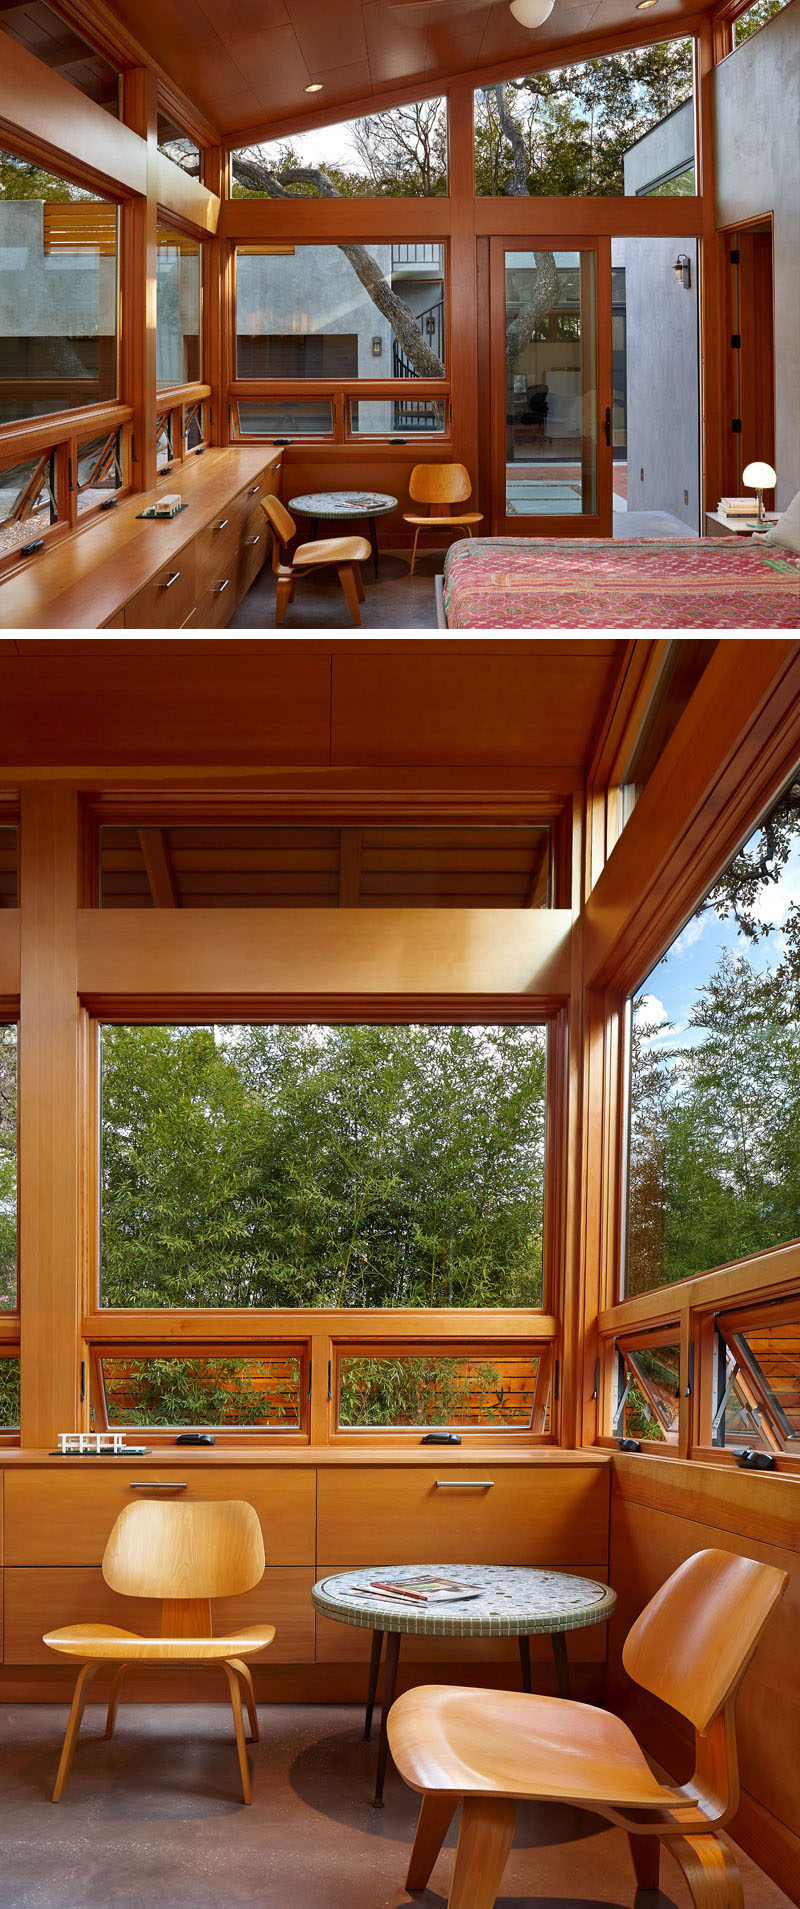 This master bedroom has windows that follow the line of the roof, and built-in wooden cabinetry for storage.